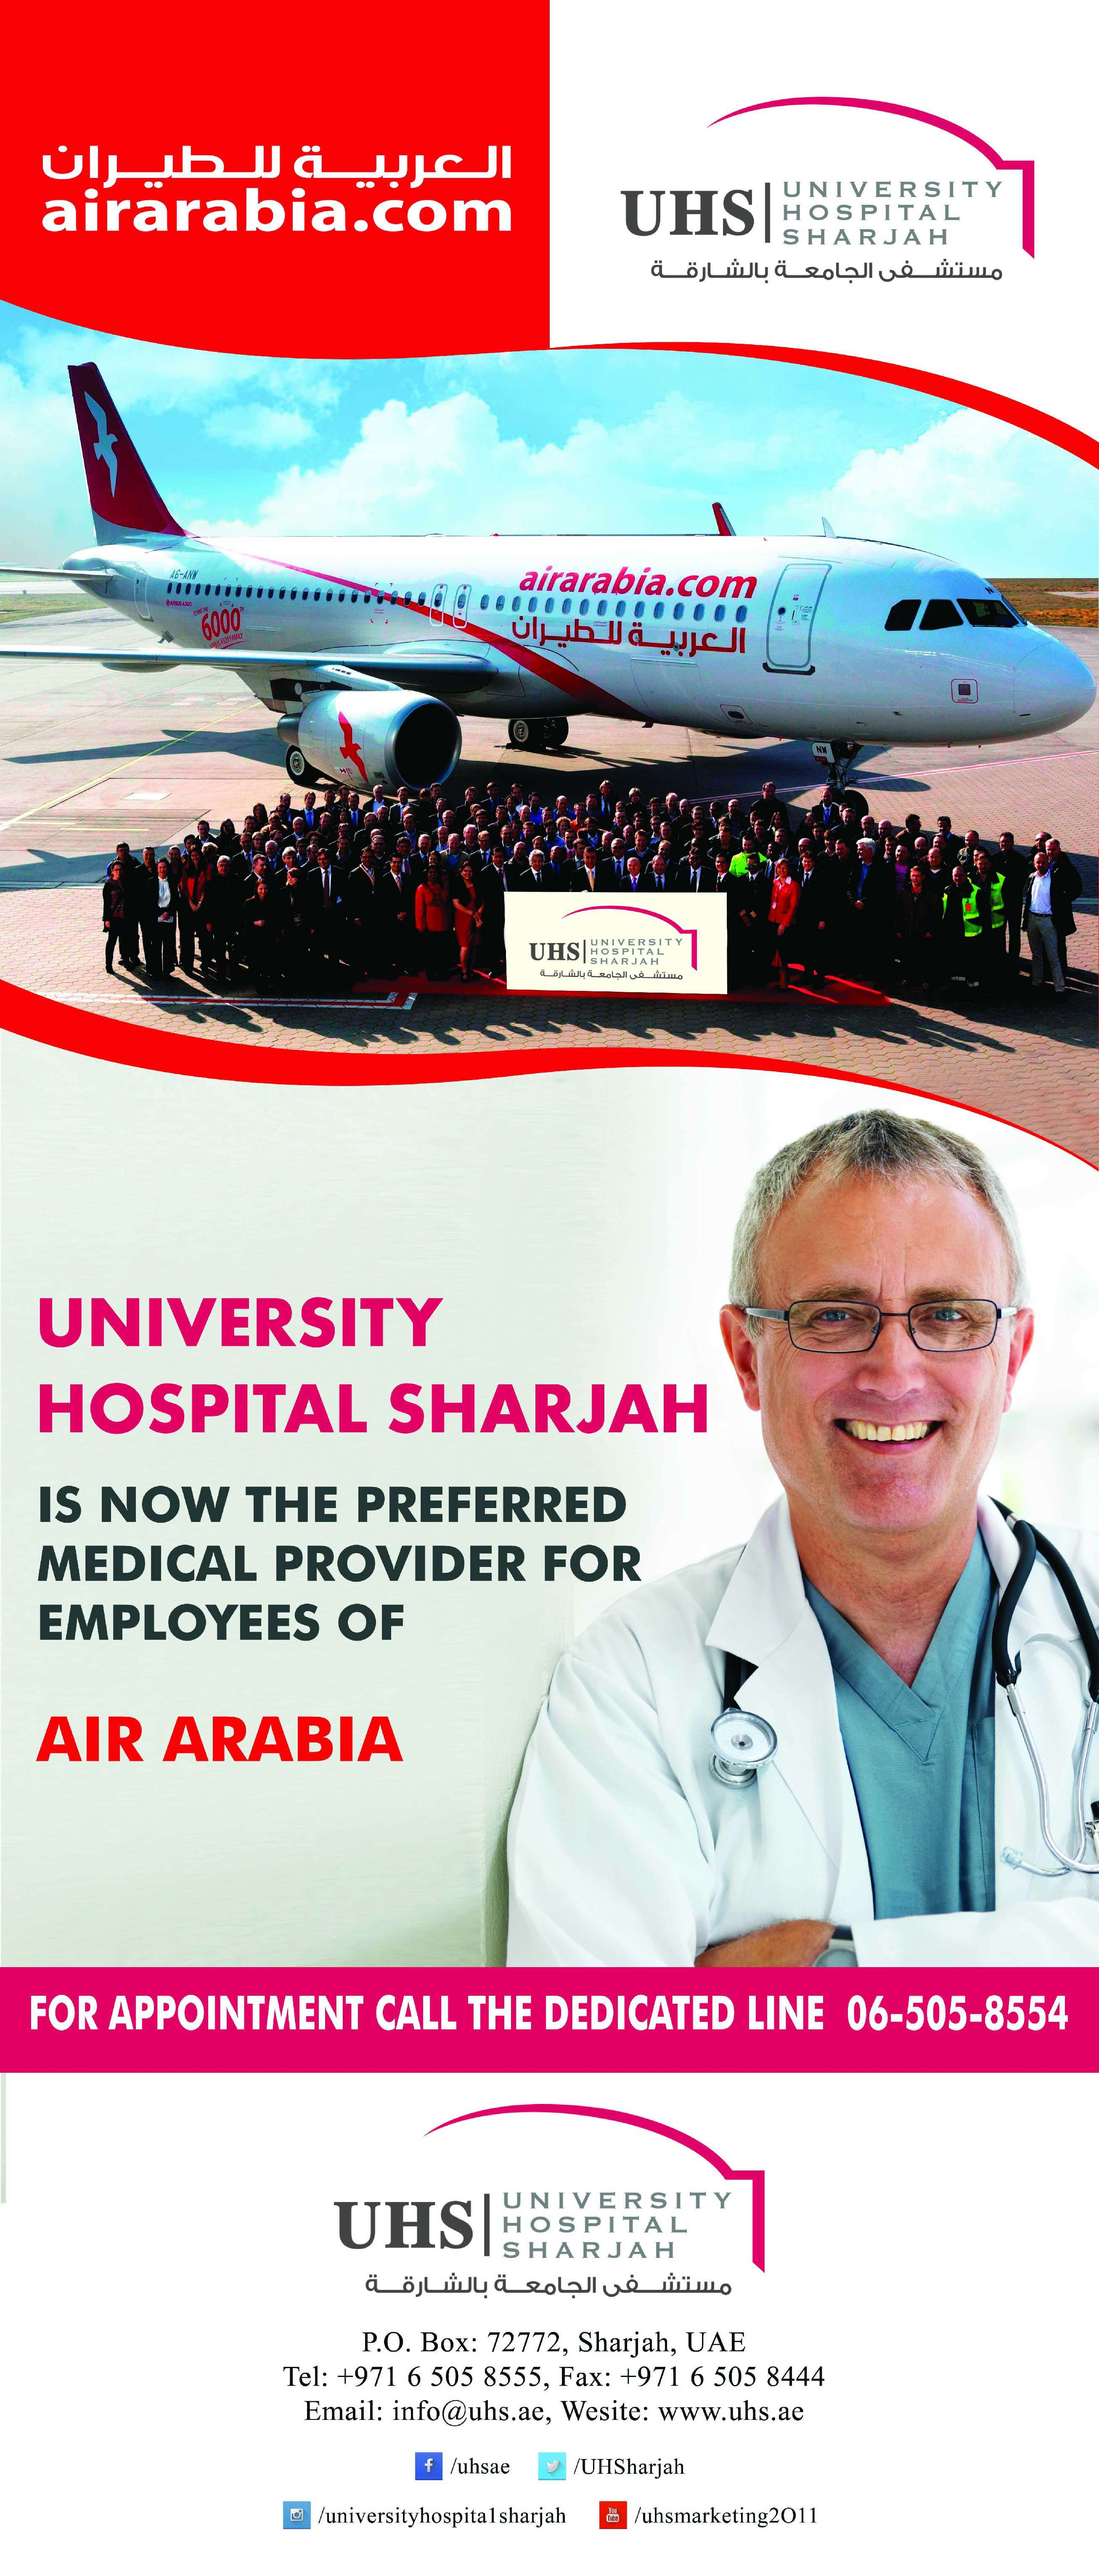 University Hospital Sharjah Is Now The Preferred Medical Provider